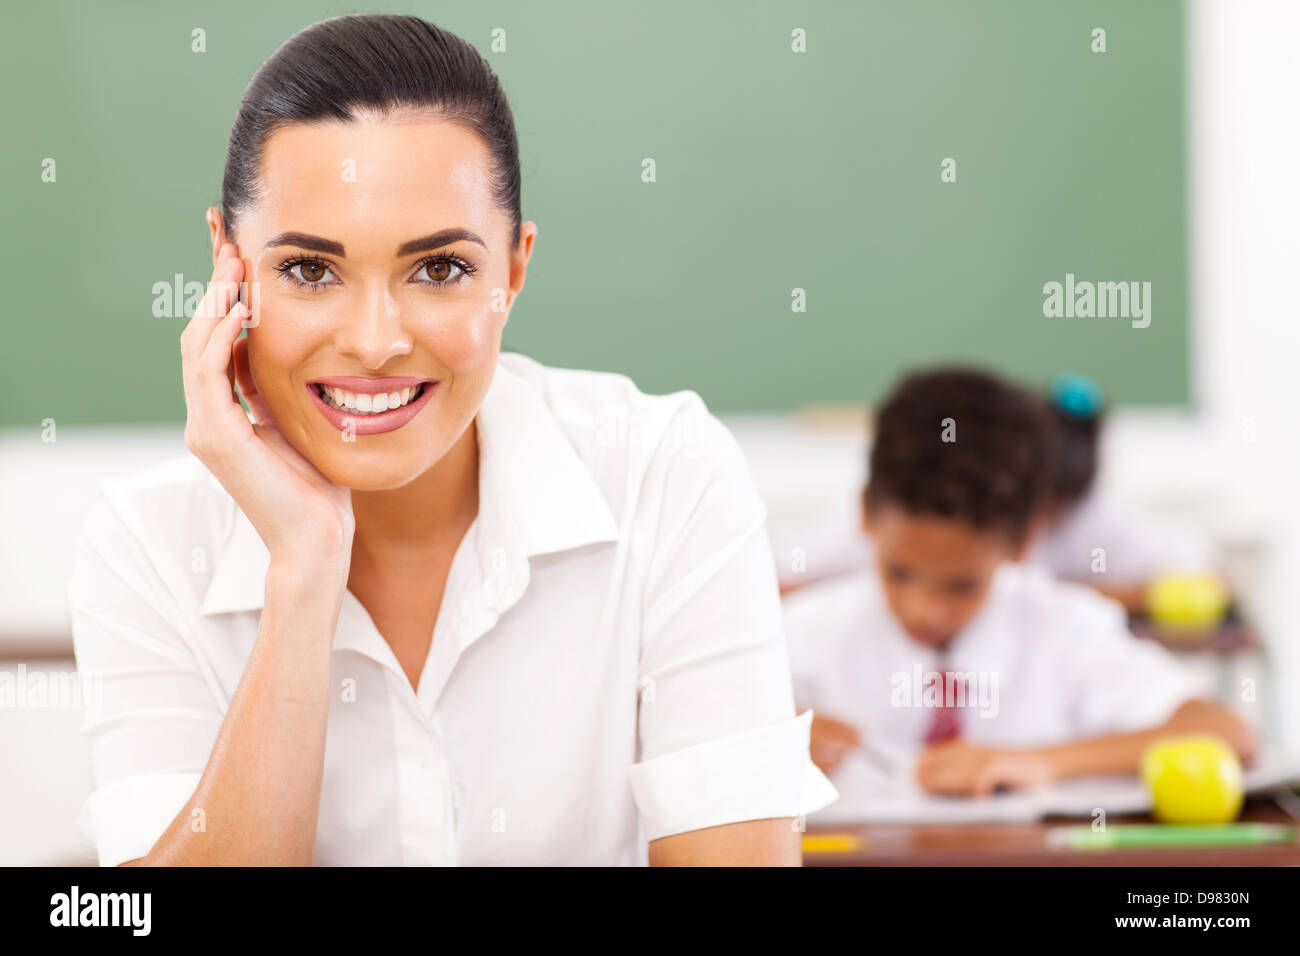 elementary school educator siting in classroom - Stock Image